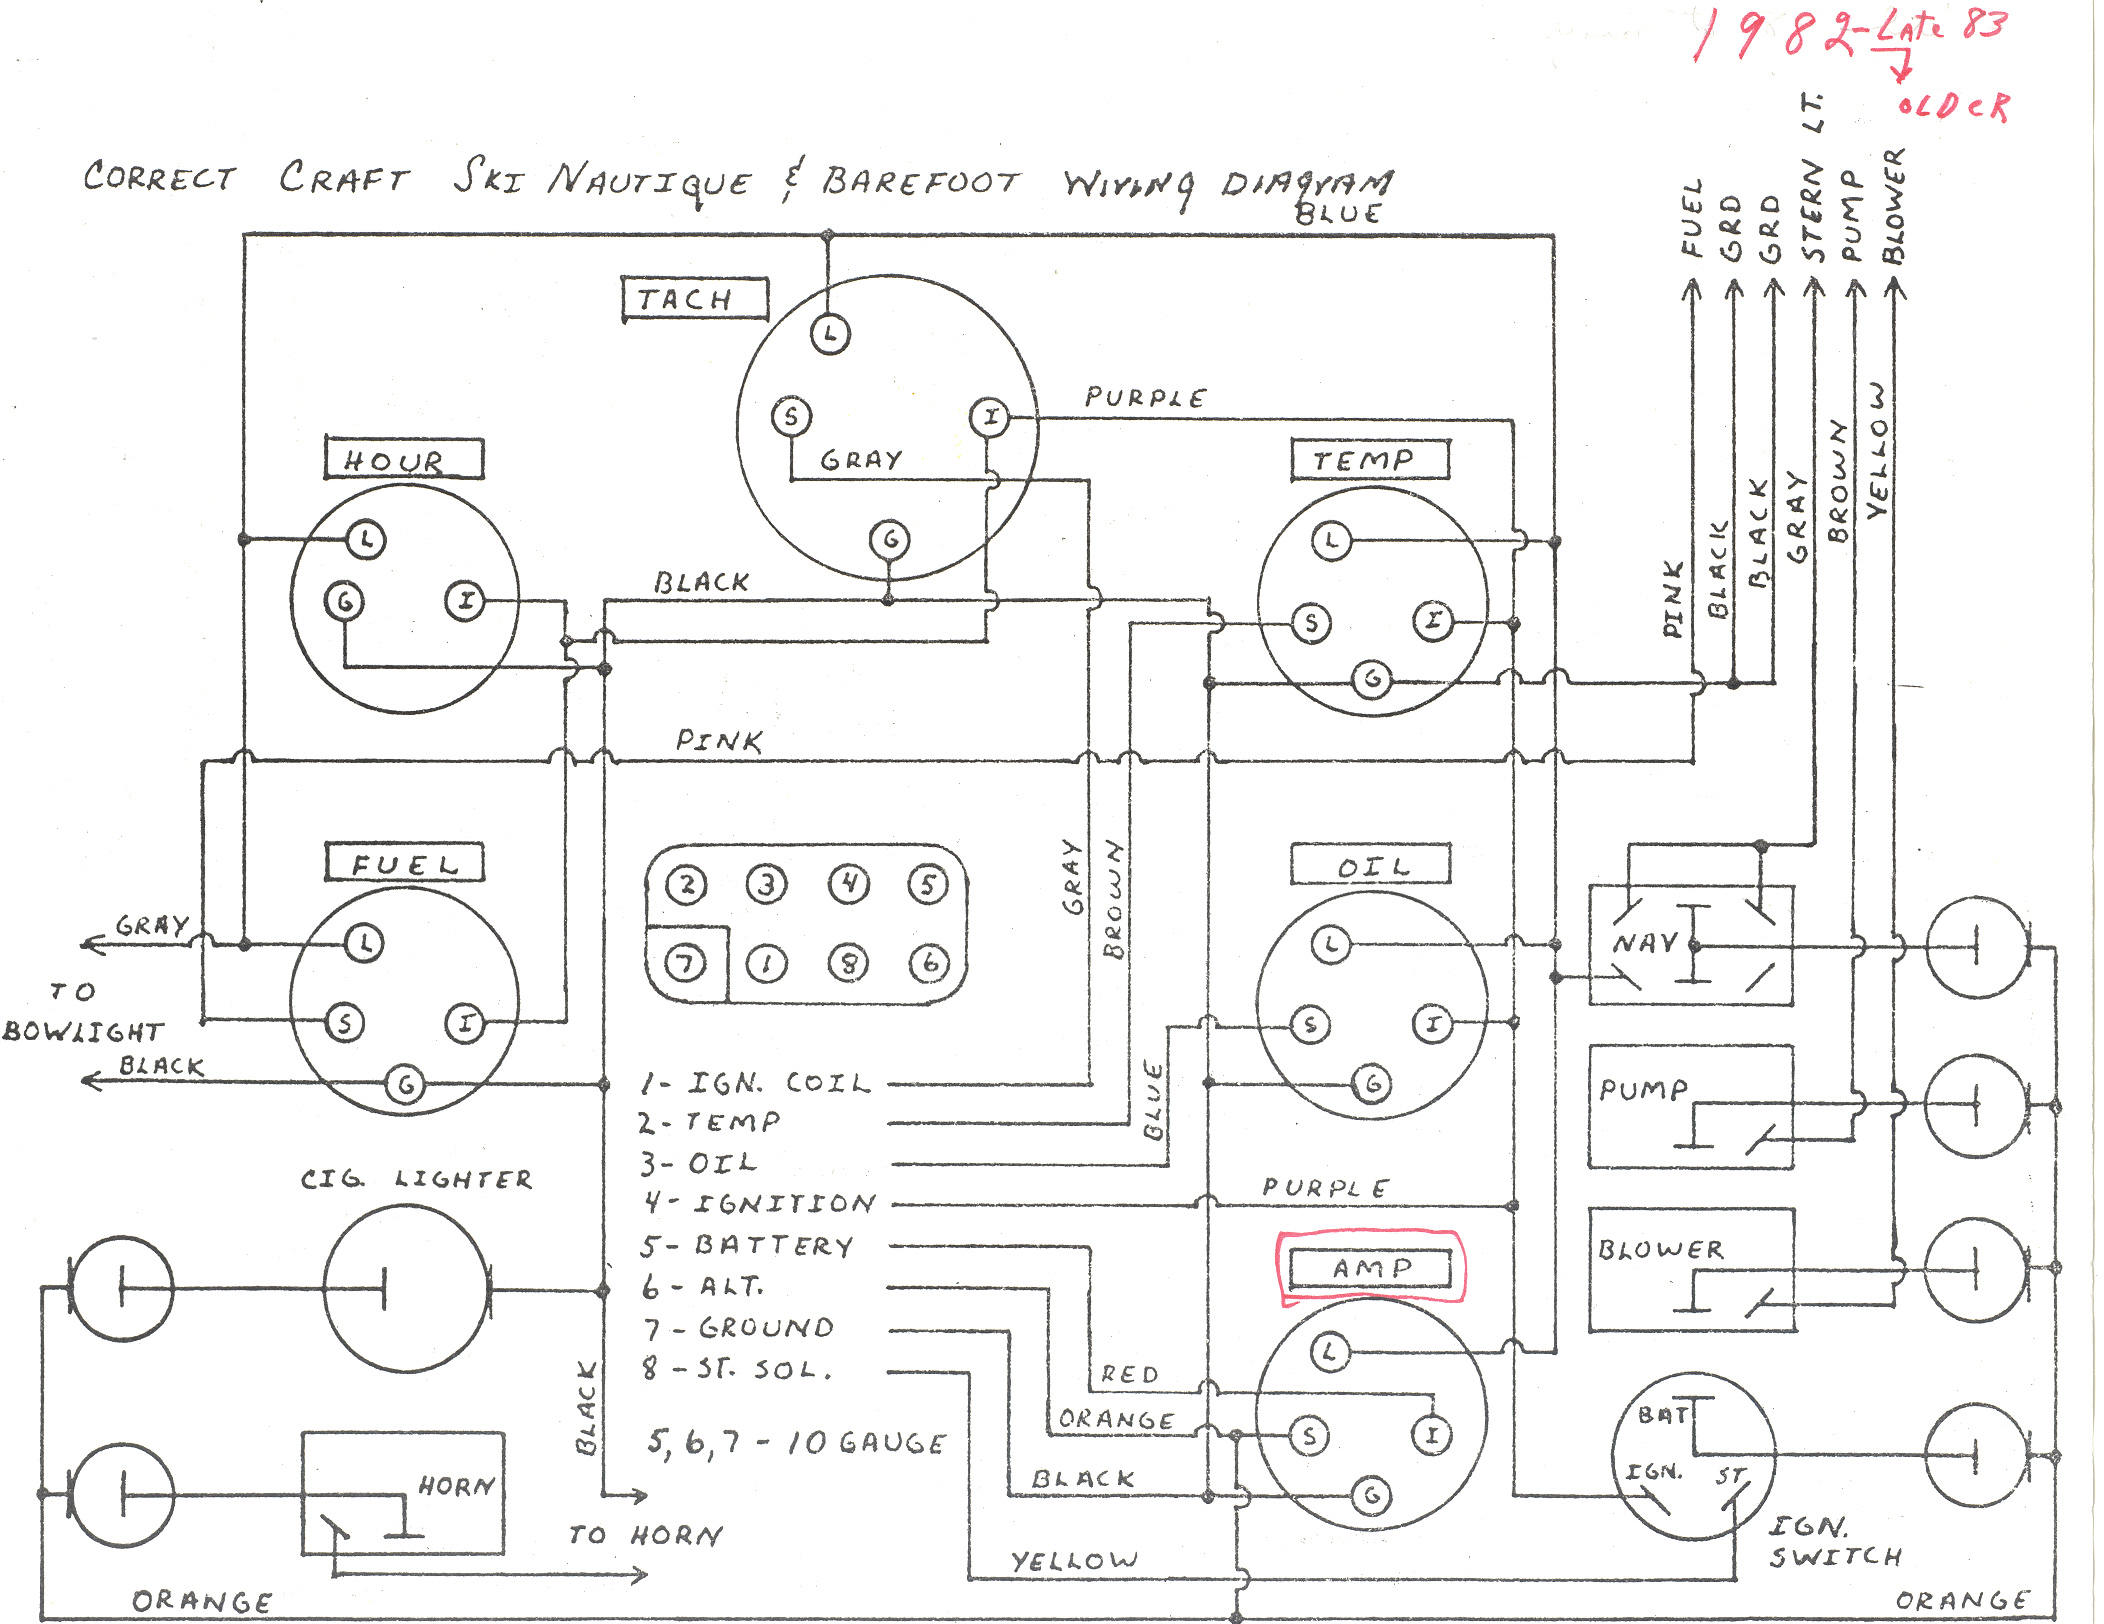 Mercruiser Coil Wiring Diagram together with Elect6 additionally 10011044 I Have Found Every Mercruiser Trim Wiring Diagram Except The One I Need also 489273 Cmc Trim And Tilt Wiring Diagram in addition 50wiy Swapped 2 0 Motor Blackmax Both 150 Mercs Previous. on mercruiser trim sensor wiring diagram